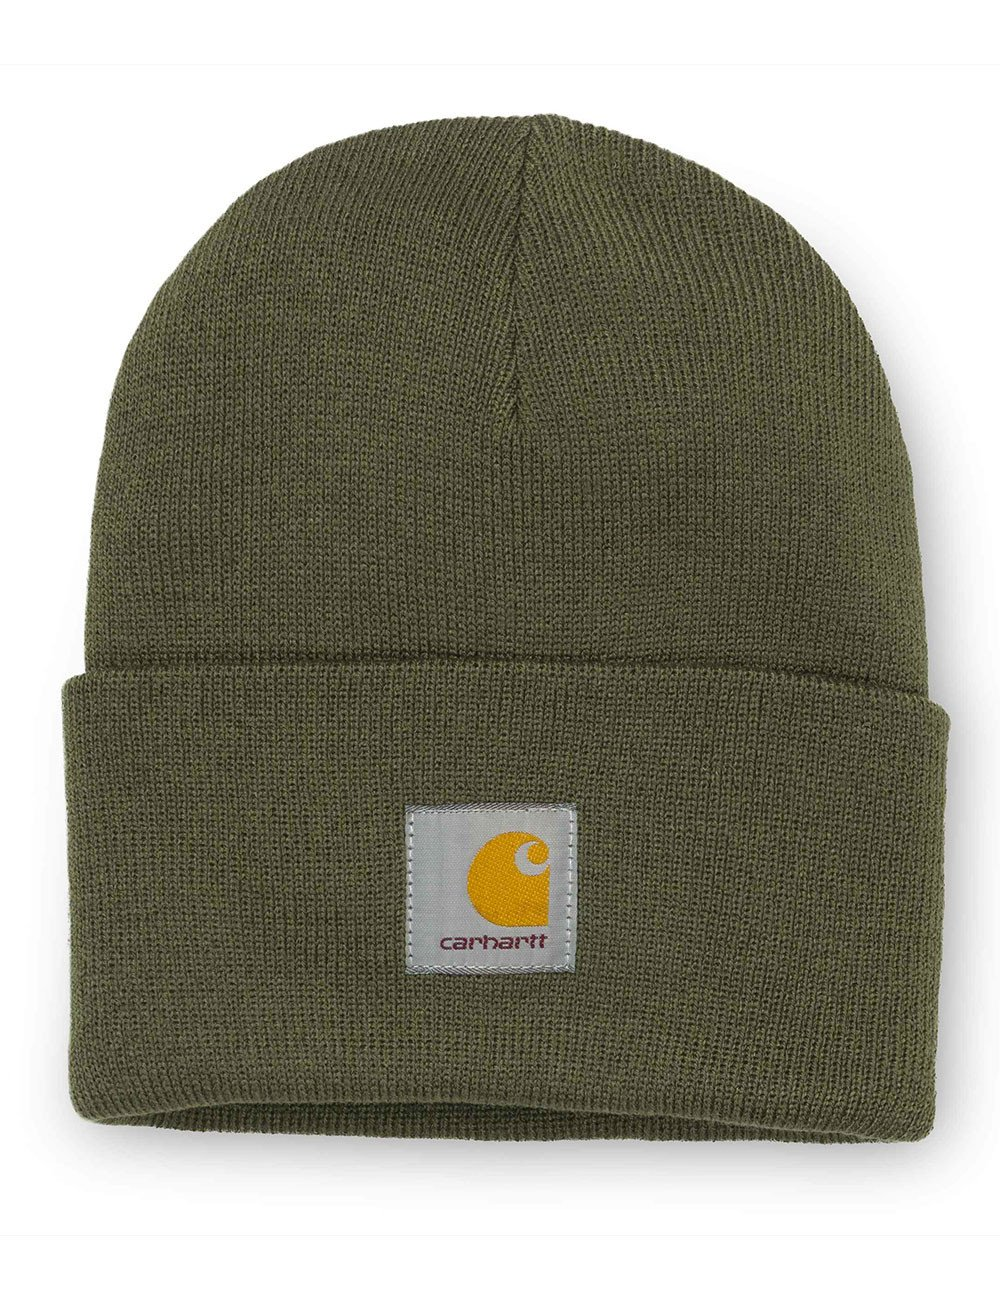 Carhartt Acrylic watch hat I020175